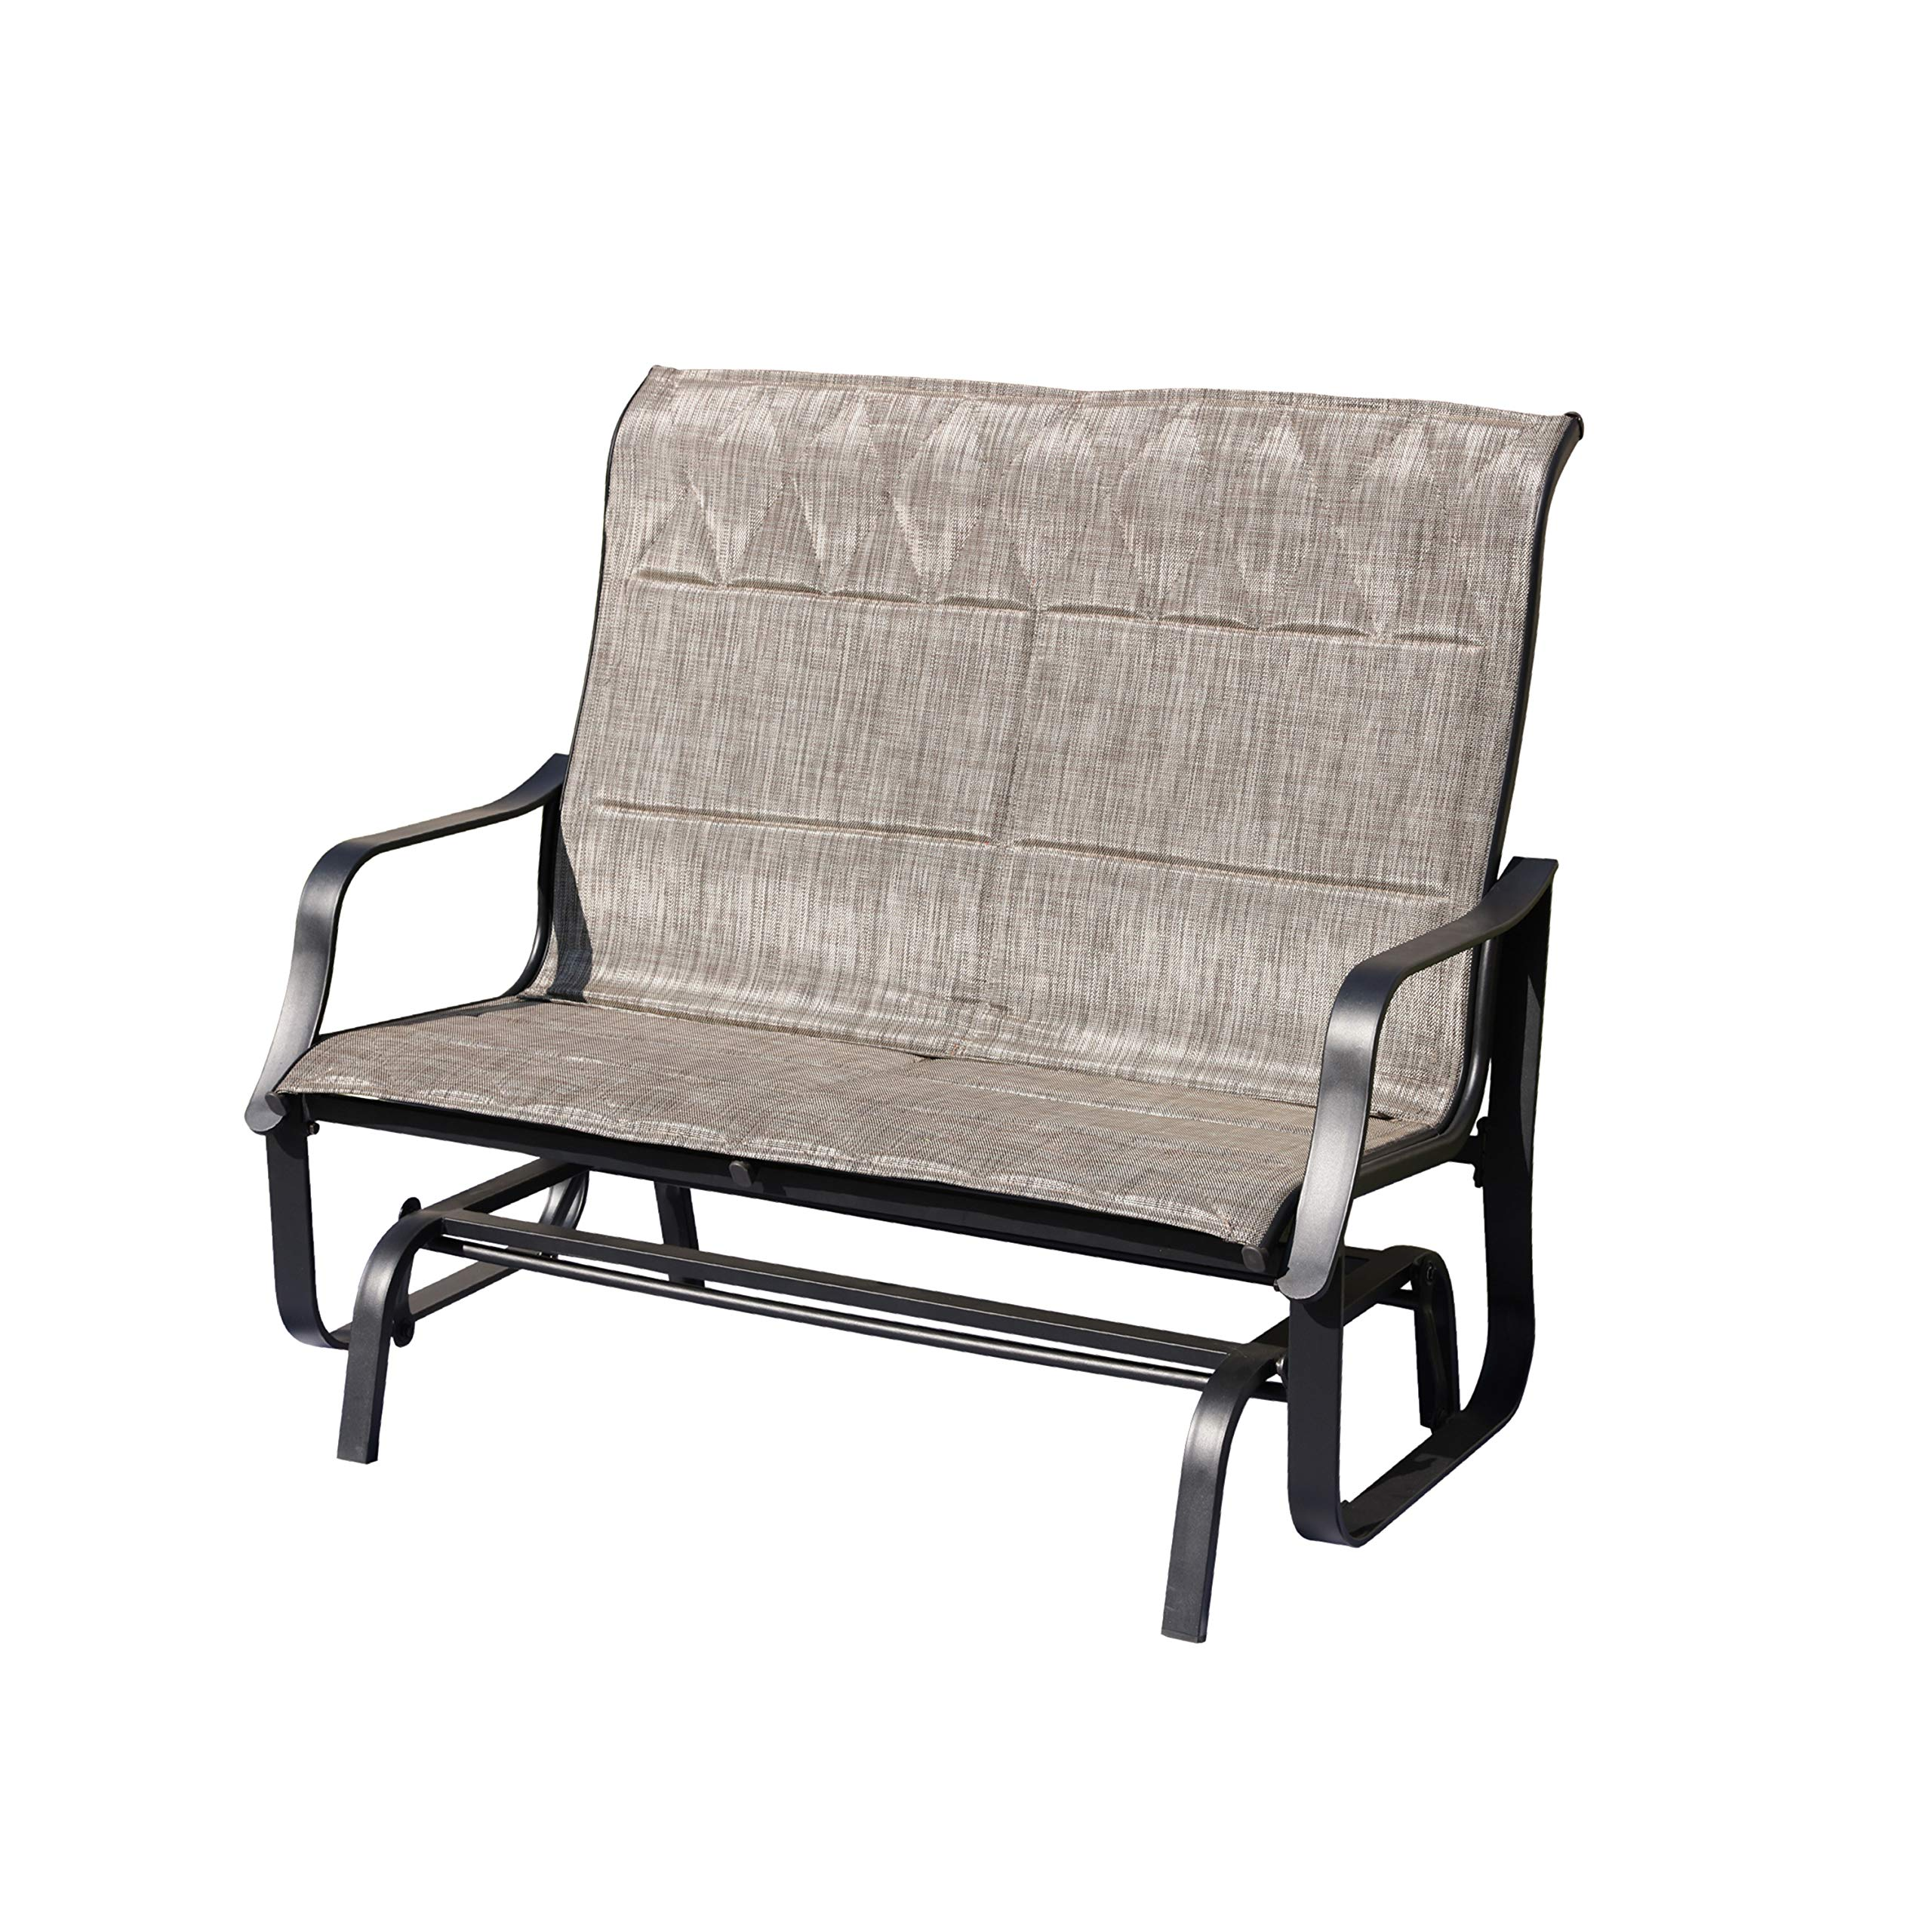 LOKATSE HOME Patio Outdoor Glider Seat Bench 2-Person Swing Loveseat Furniture Rocker Lounge Chair,Grey